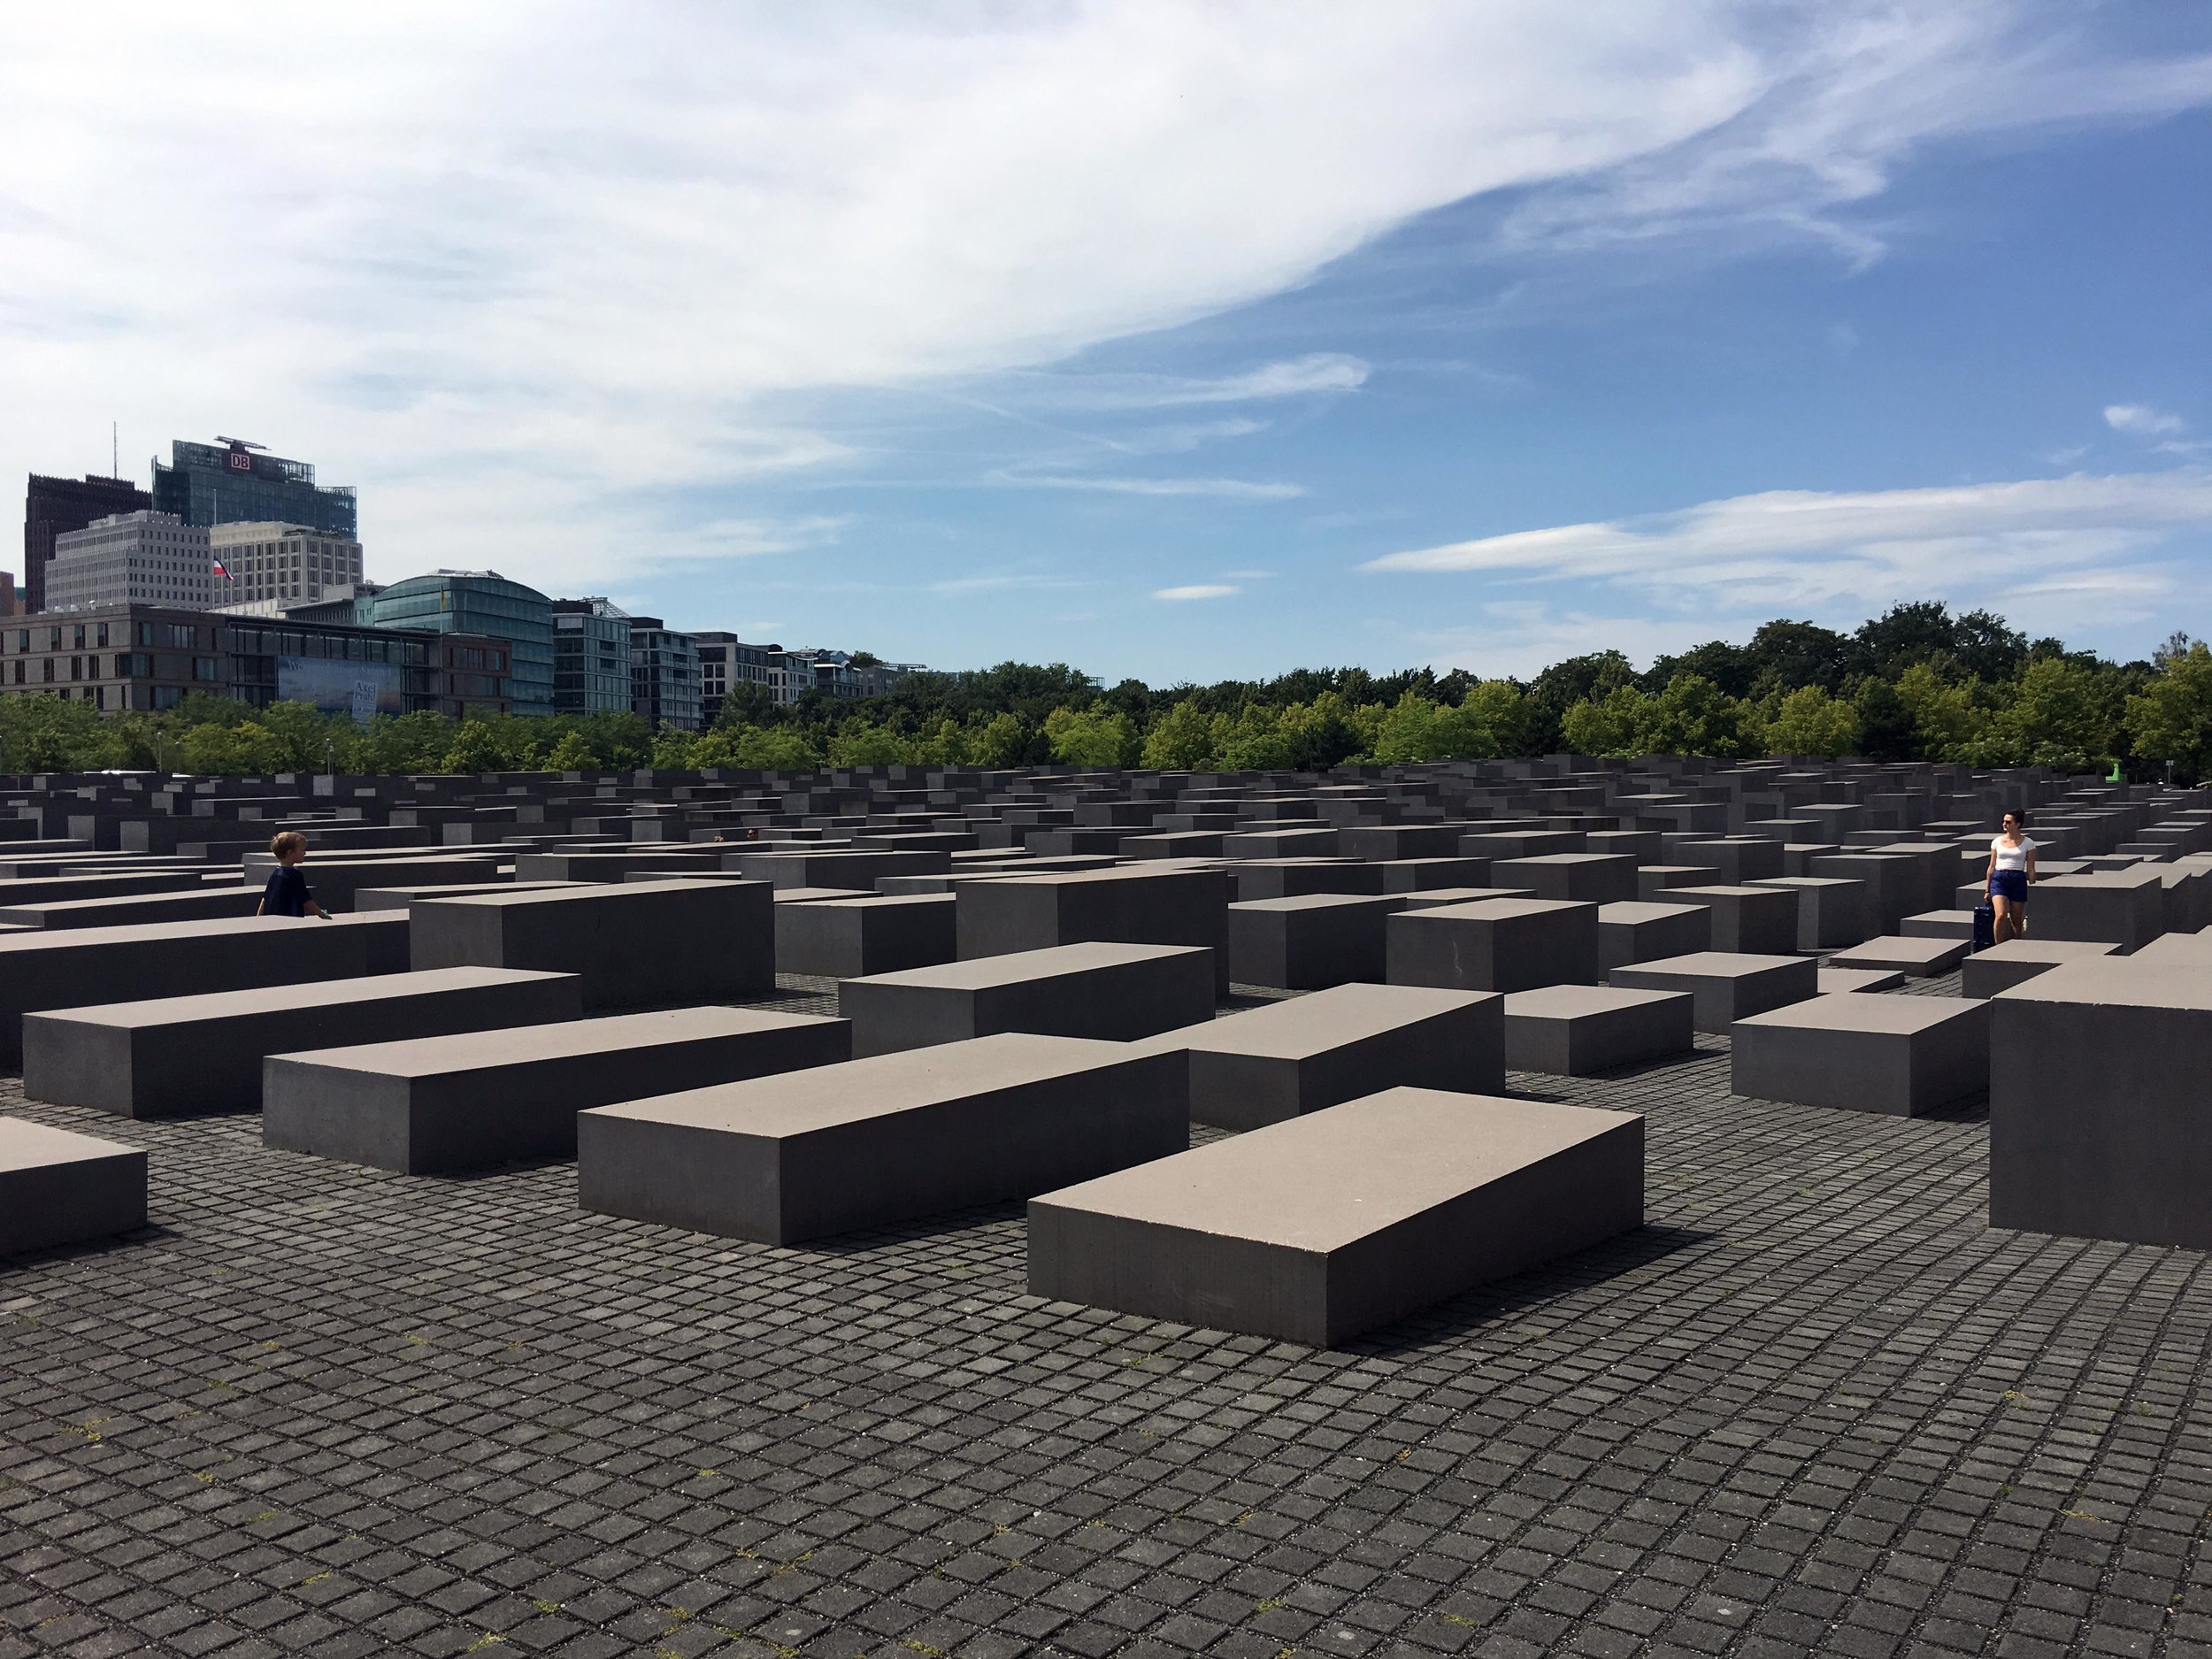 Memorial to the Murdered Jews, Berlin. Architect: Peter Eisenman. Photograph by Brook Andrew, October 2017.